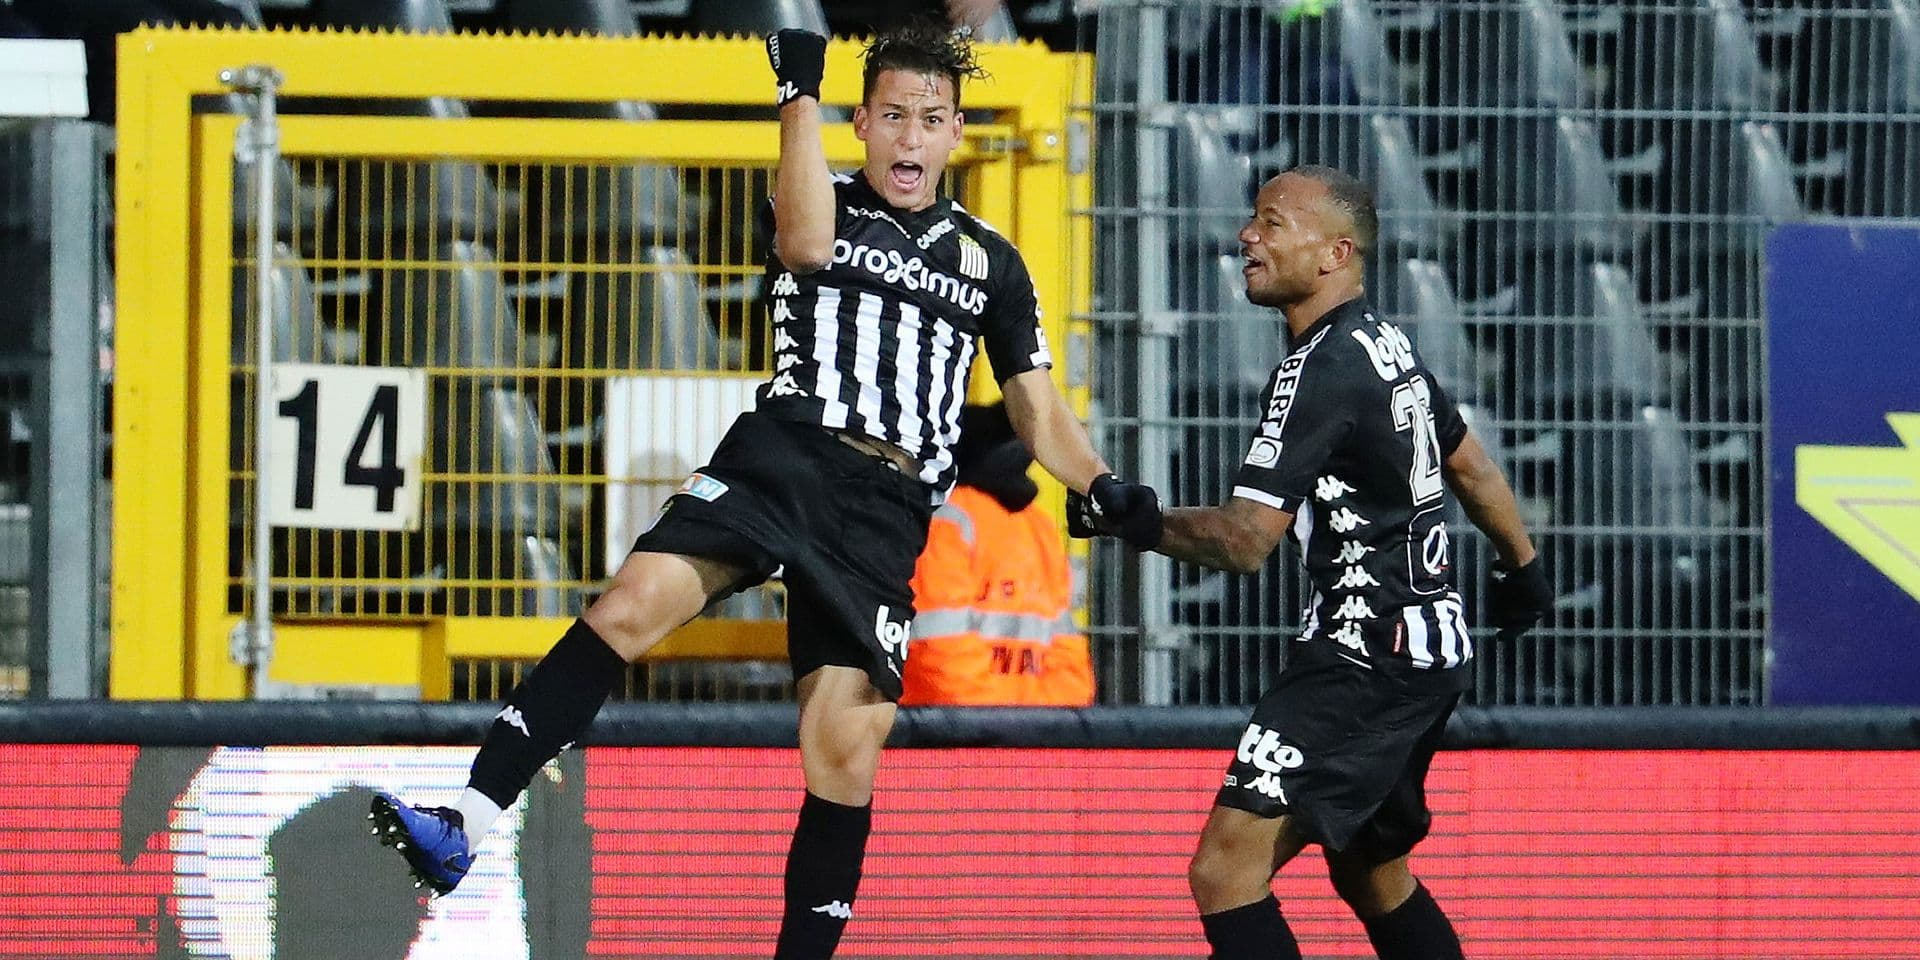 Charleroi's Christian Benavente celebrates after scoring during a soccer game between Sporting Charleroi and Cercle Brugge KSV, Saturday 01 December 2018 in Charleroi, on day 17 of the 'Jupiler Pro League' Belgian soccer championship season 2018-2019. BELGA PHOTO VIRGINIE LEFOUR